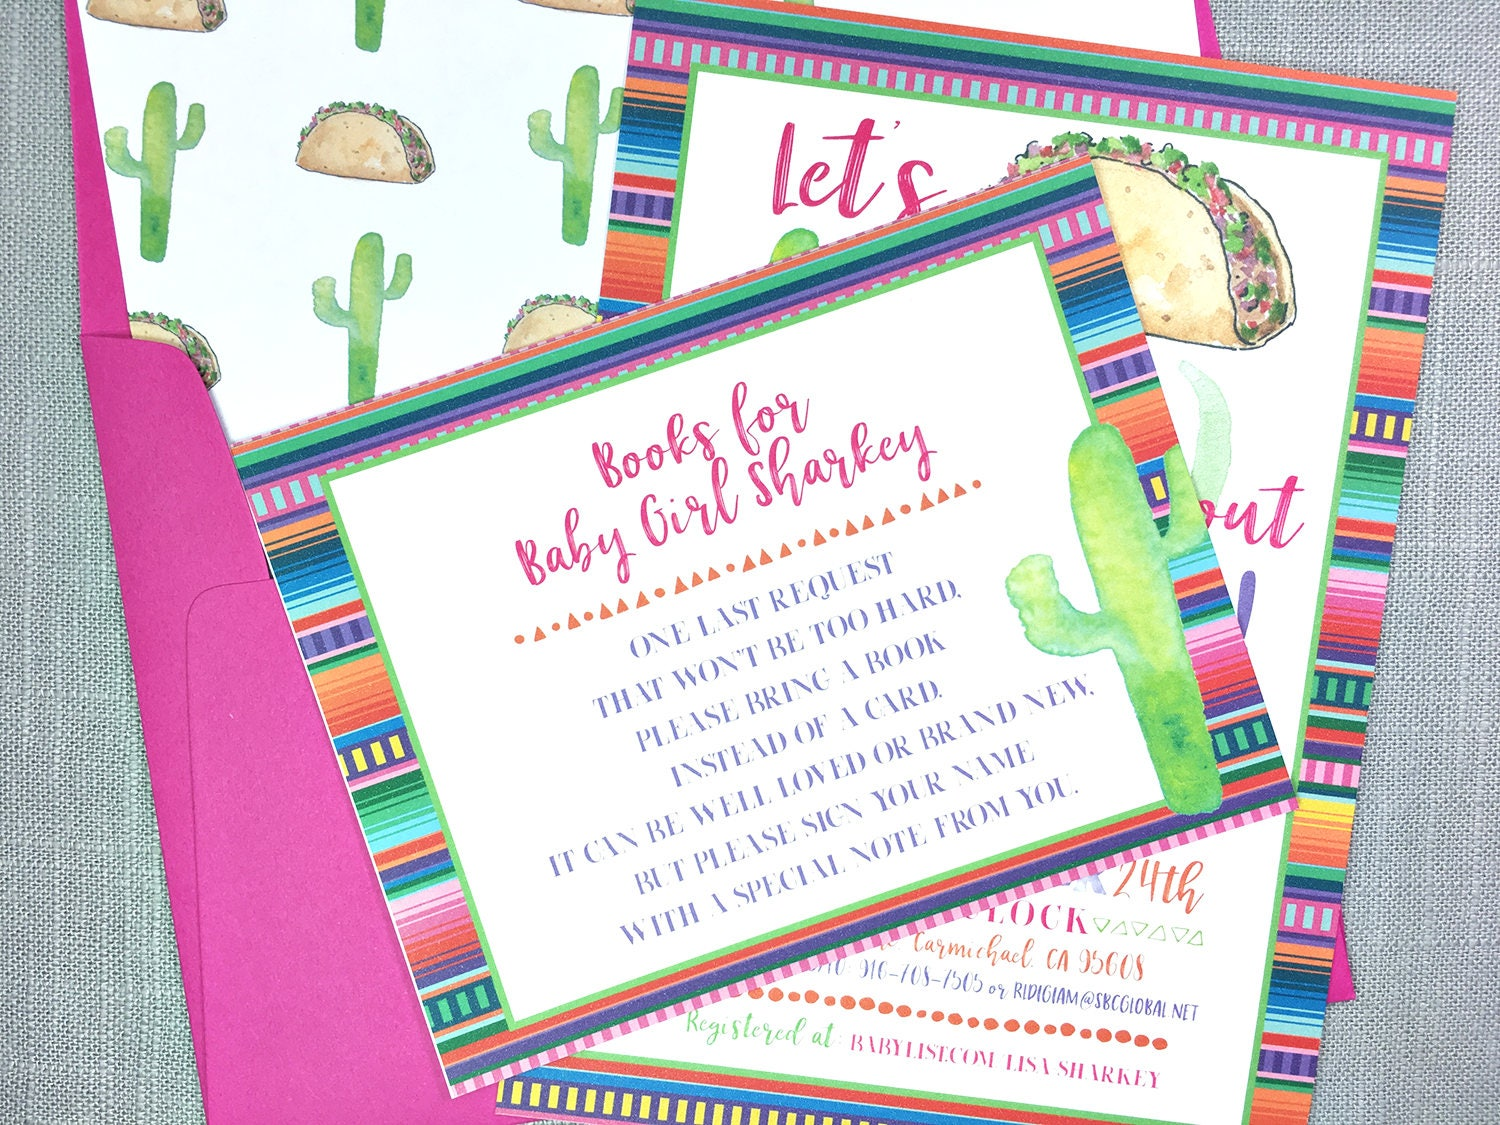 Taco Bout A Baby Shower Invitation, Baby Shower Fiesta invites ...